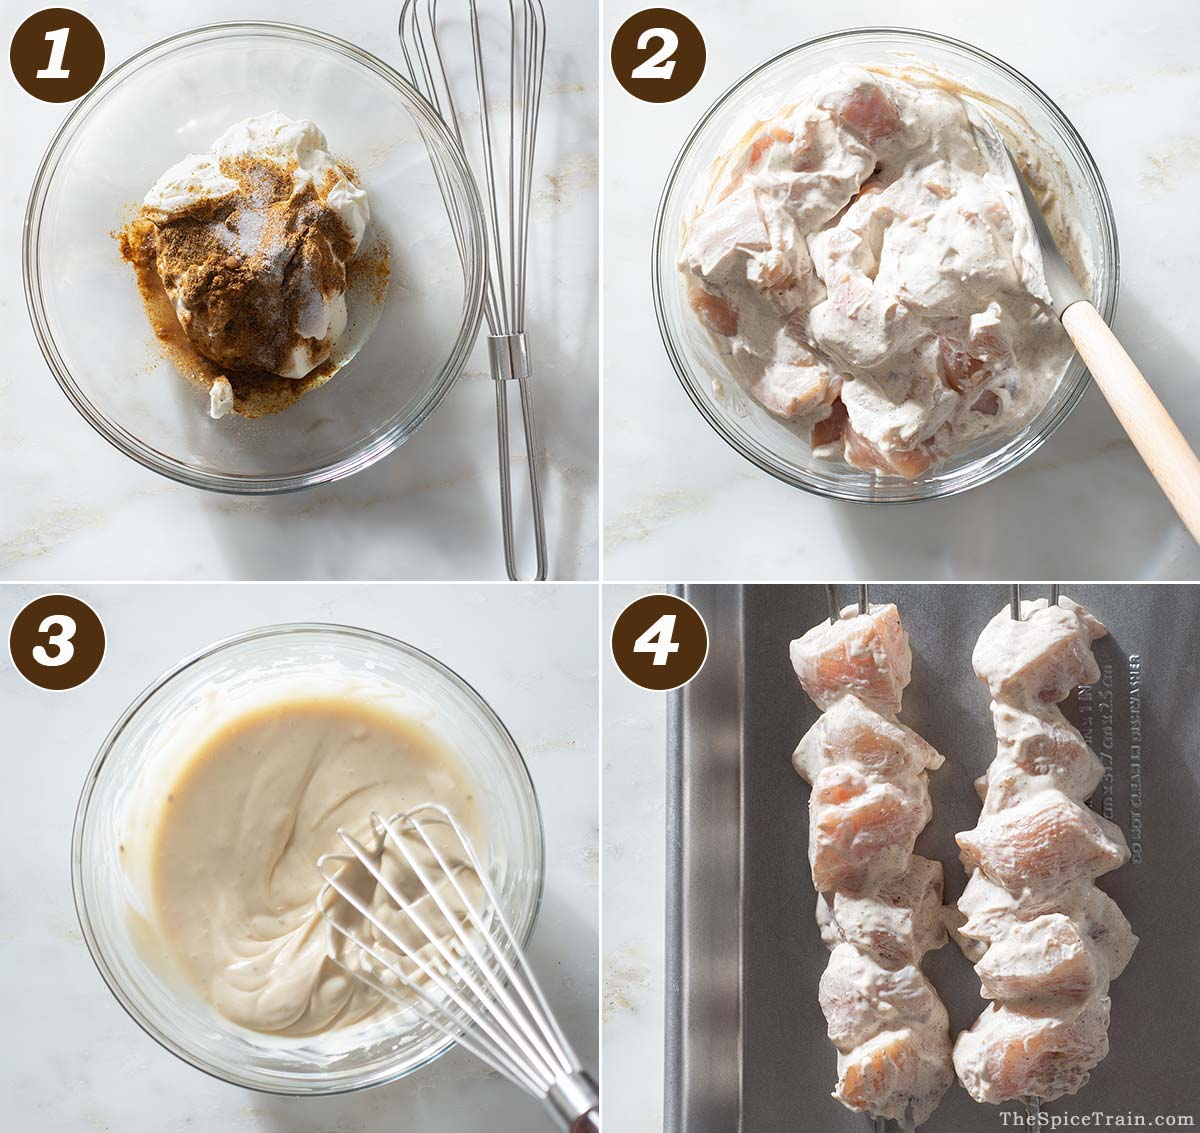 Salad dressing and marinade in a bowl and marinated chicken cubes in a bowl and on skewers.